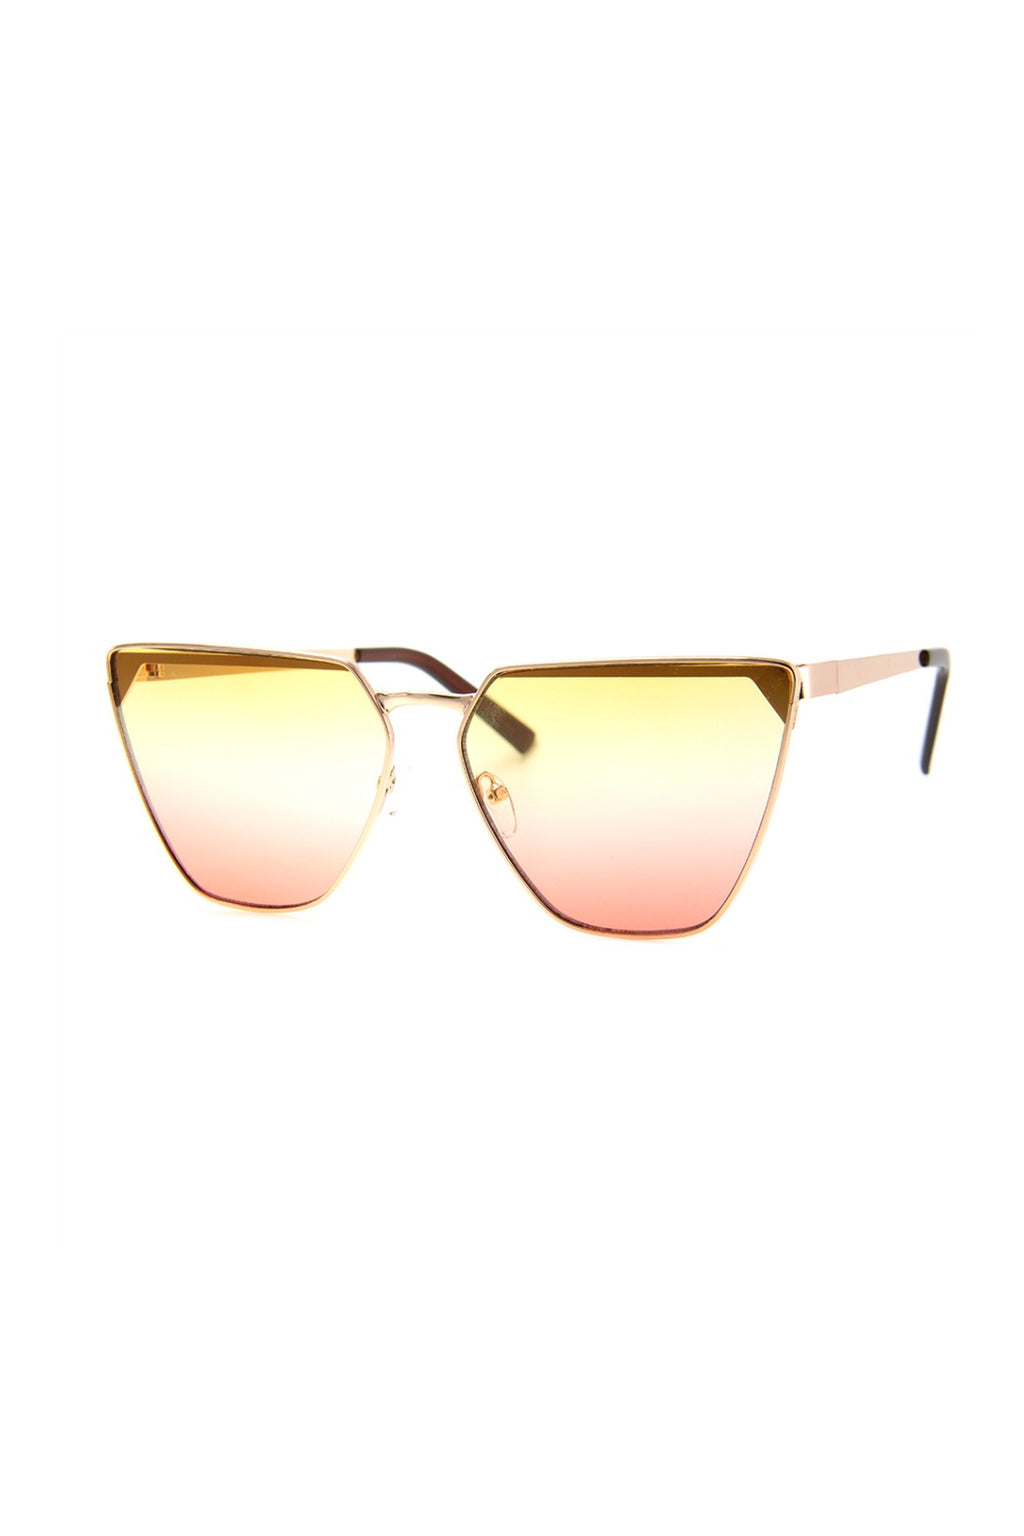 Seize Sunnies - Rose Gold